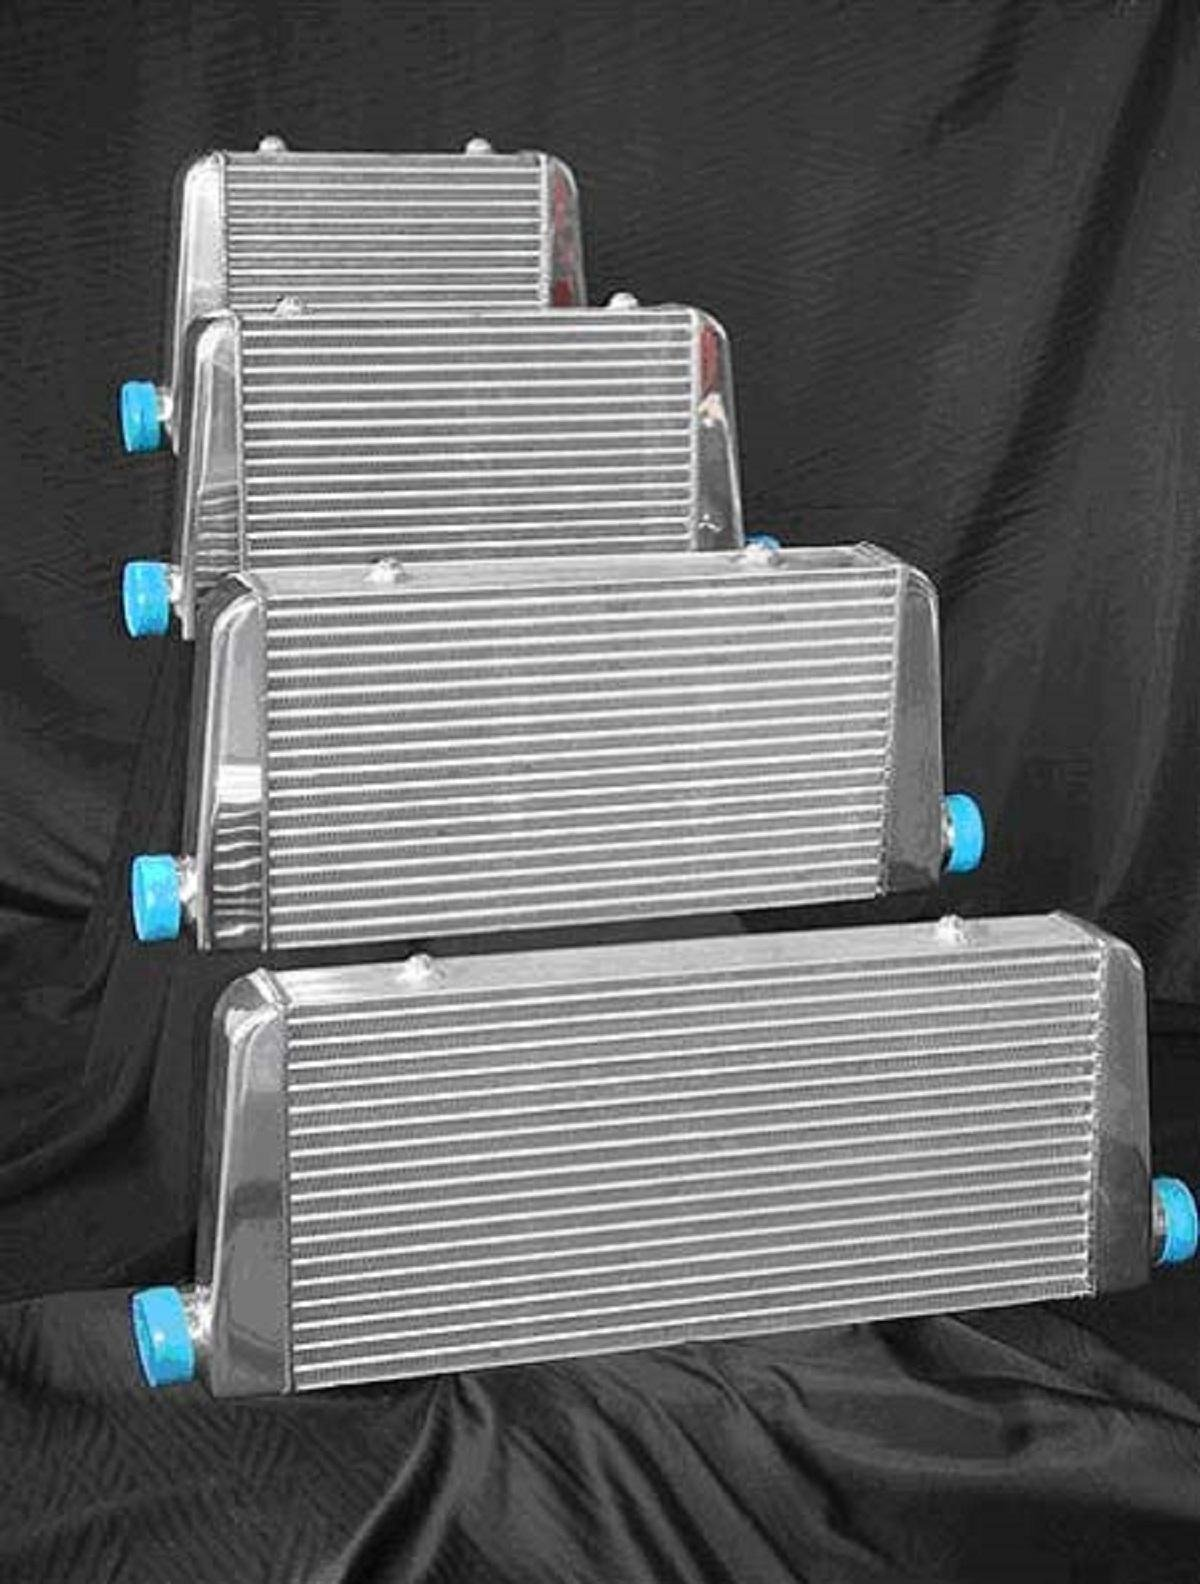 Intercooler, What Is It And Are There Different Types Of It?